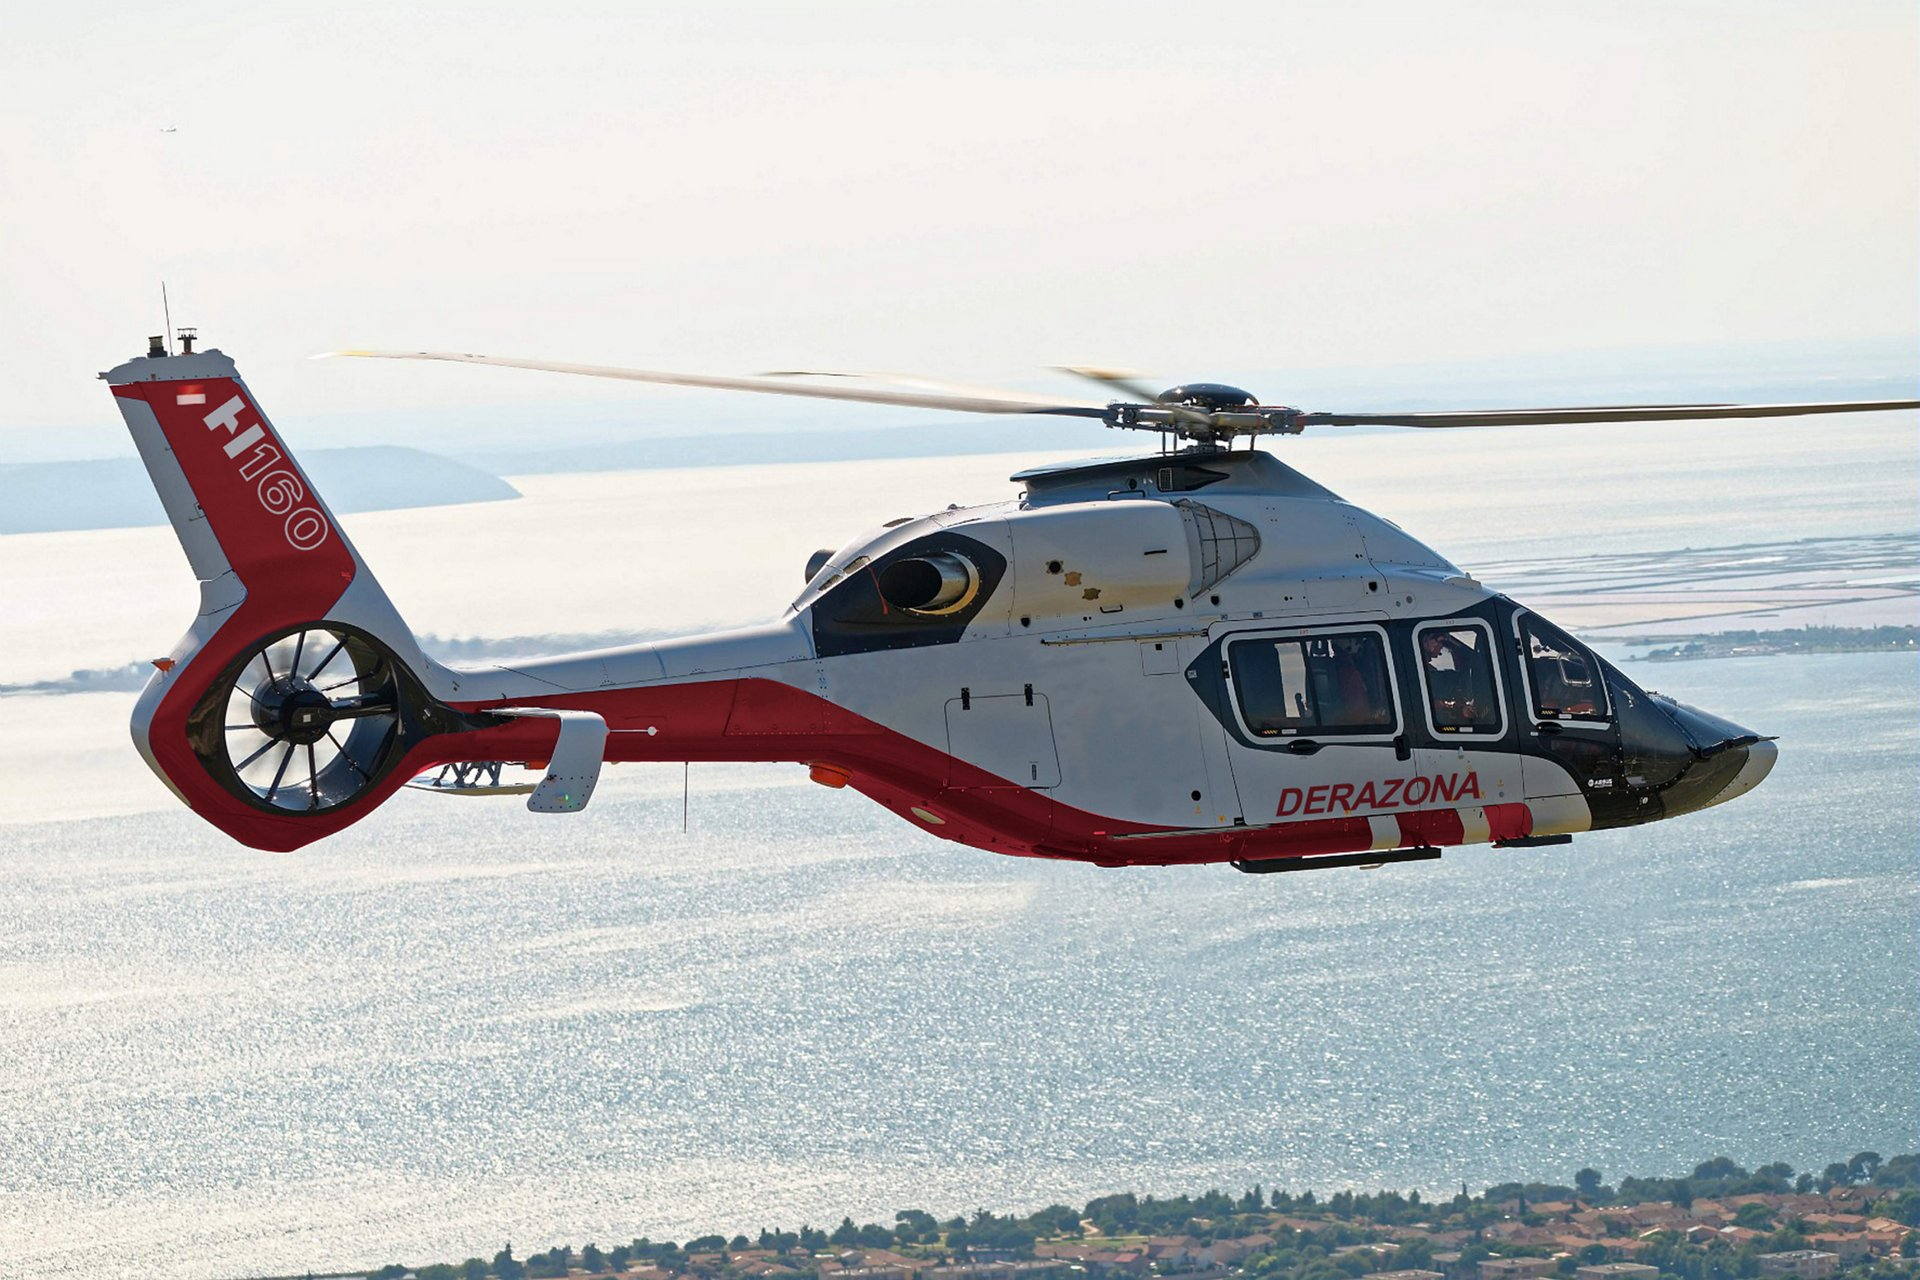 Airbus Helicopters has secured an H160 order from Derazona Helicopters in Indonesia, launching this new rotorcraft in the country's oil and gas sector.